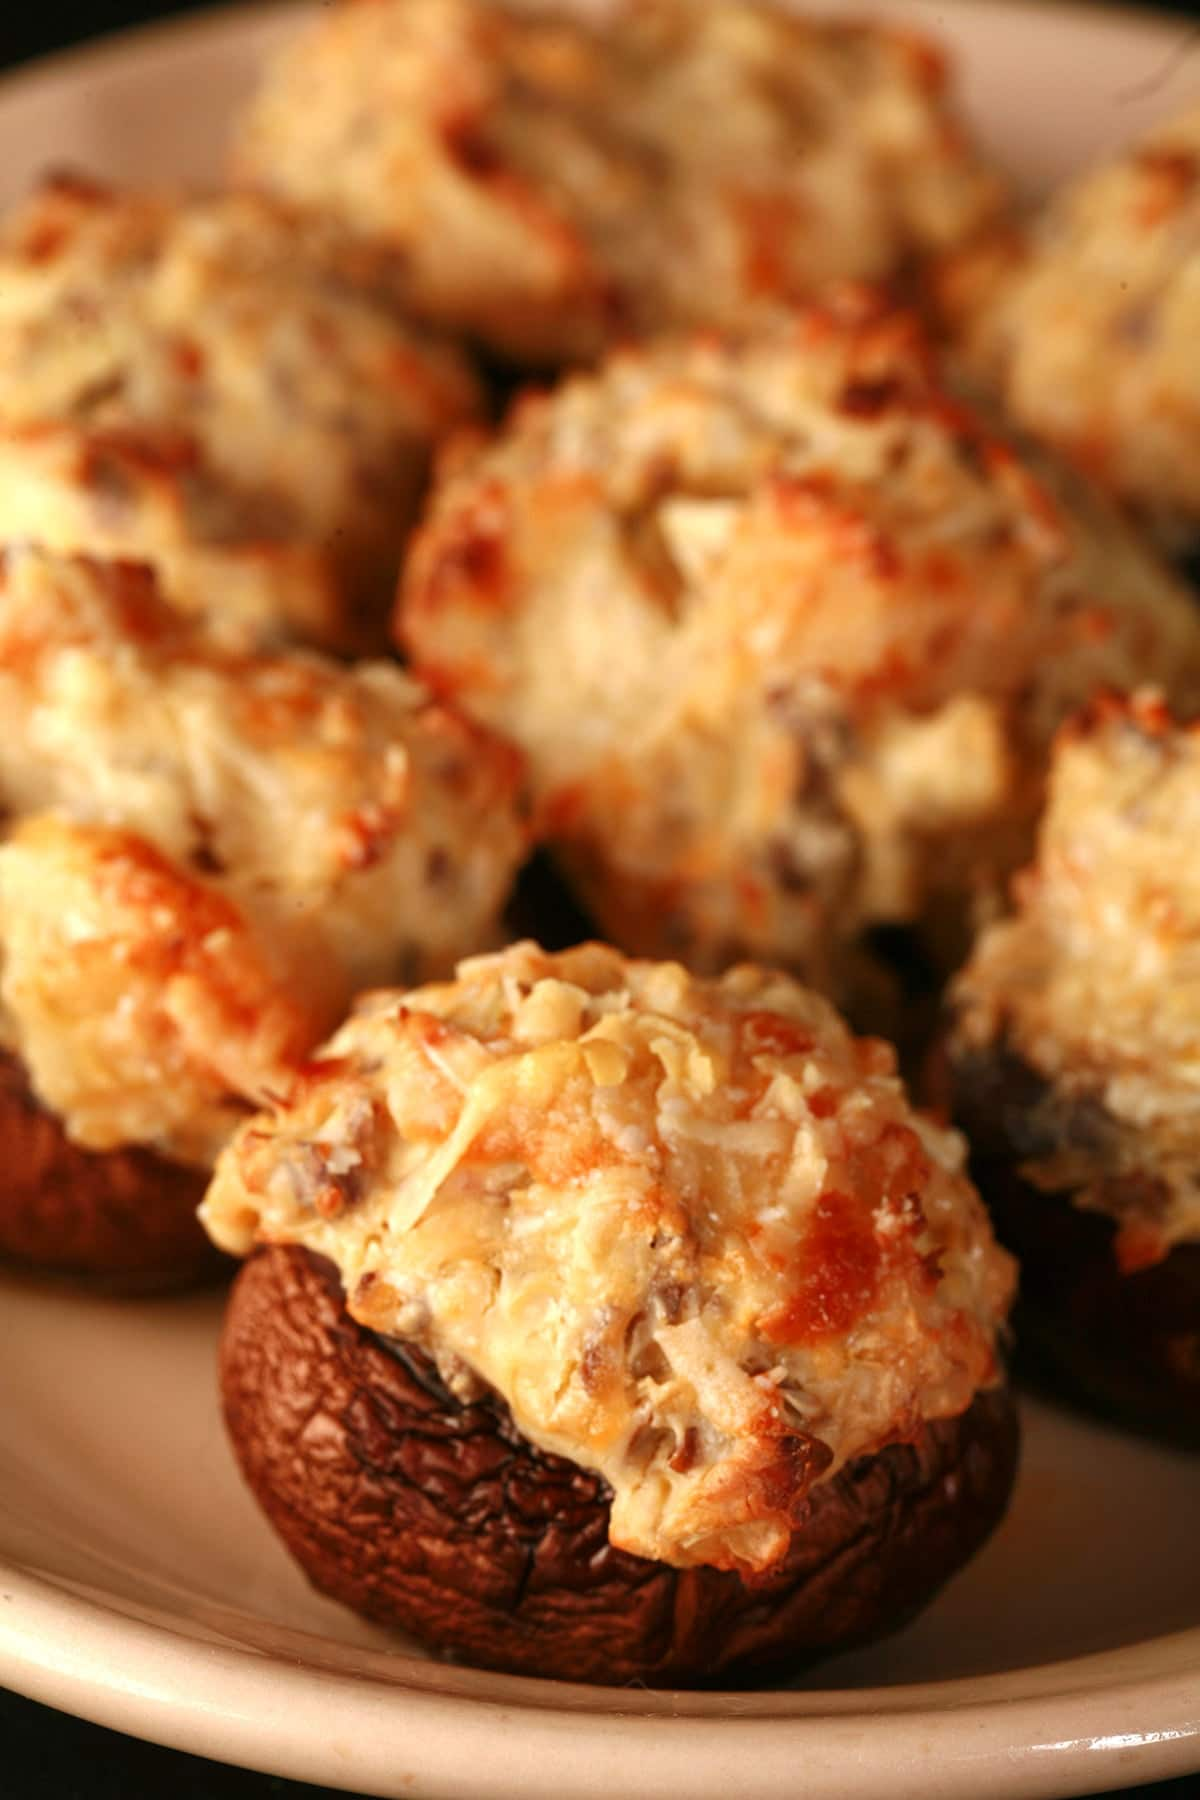 Golden brown shrimp and artichoke stuffed mushrooms on a tan plate.